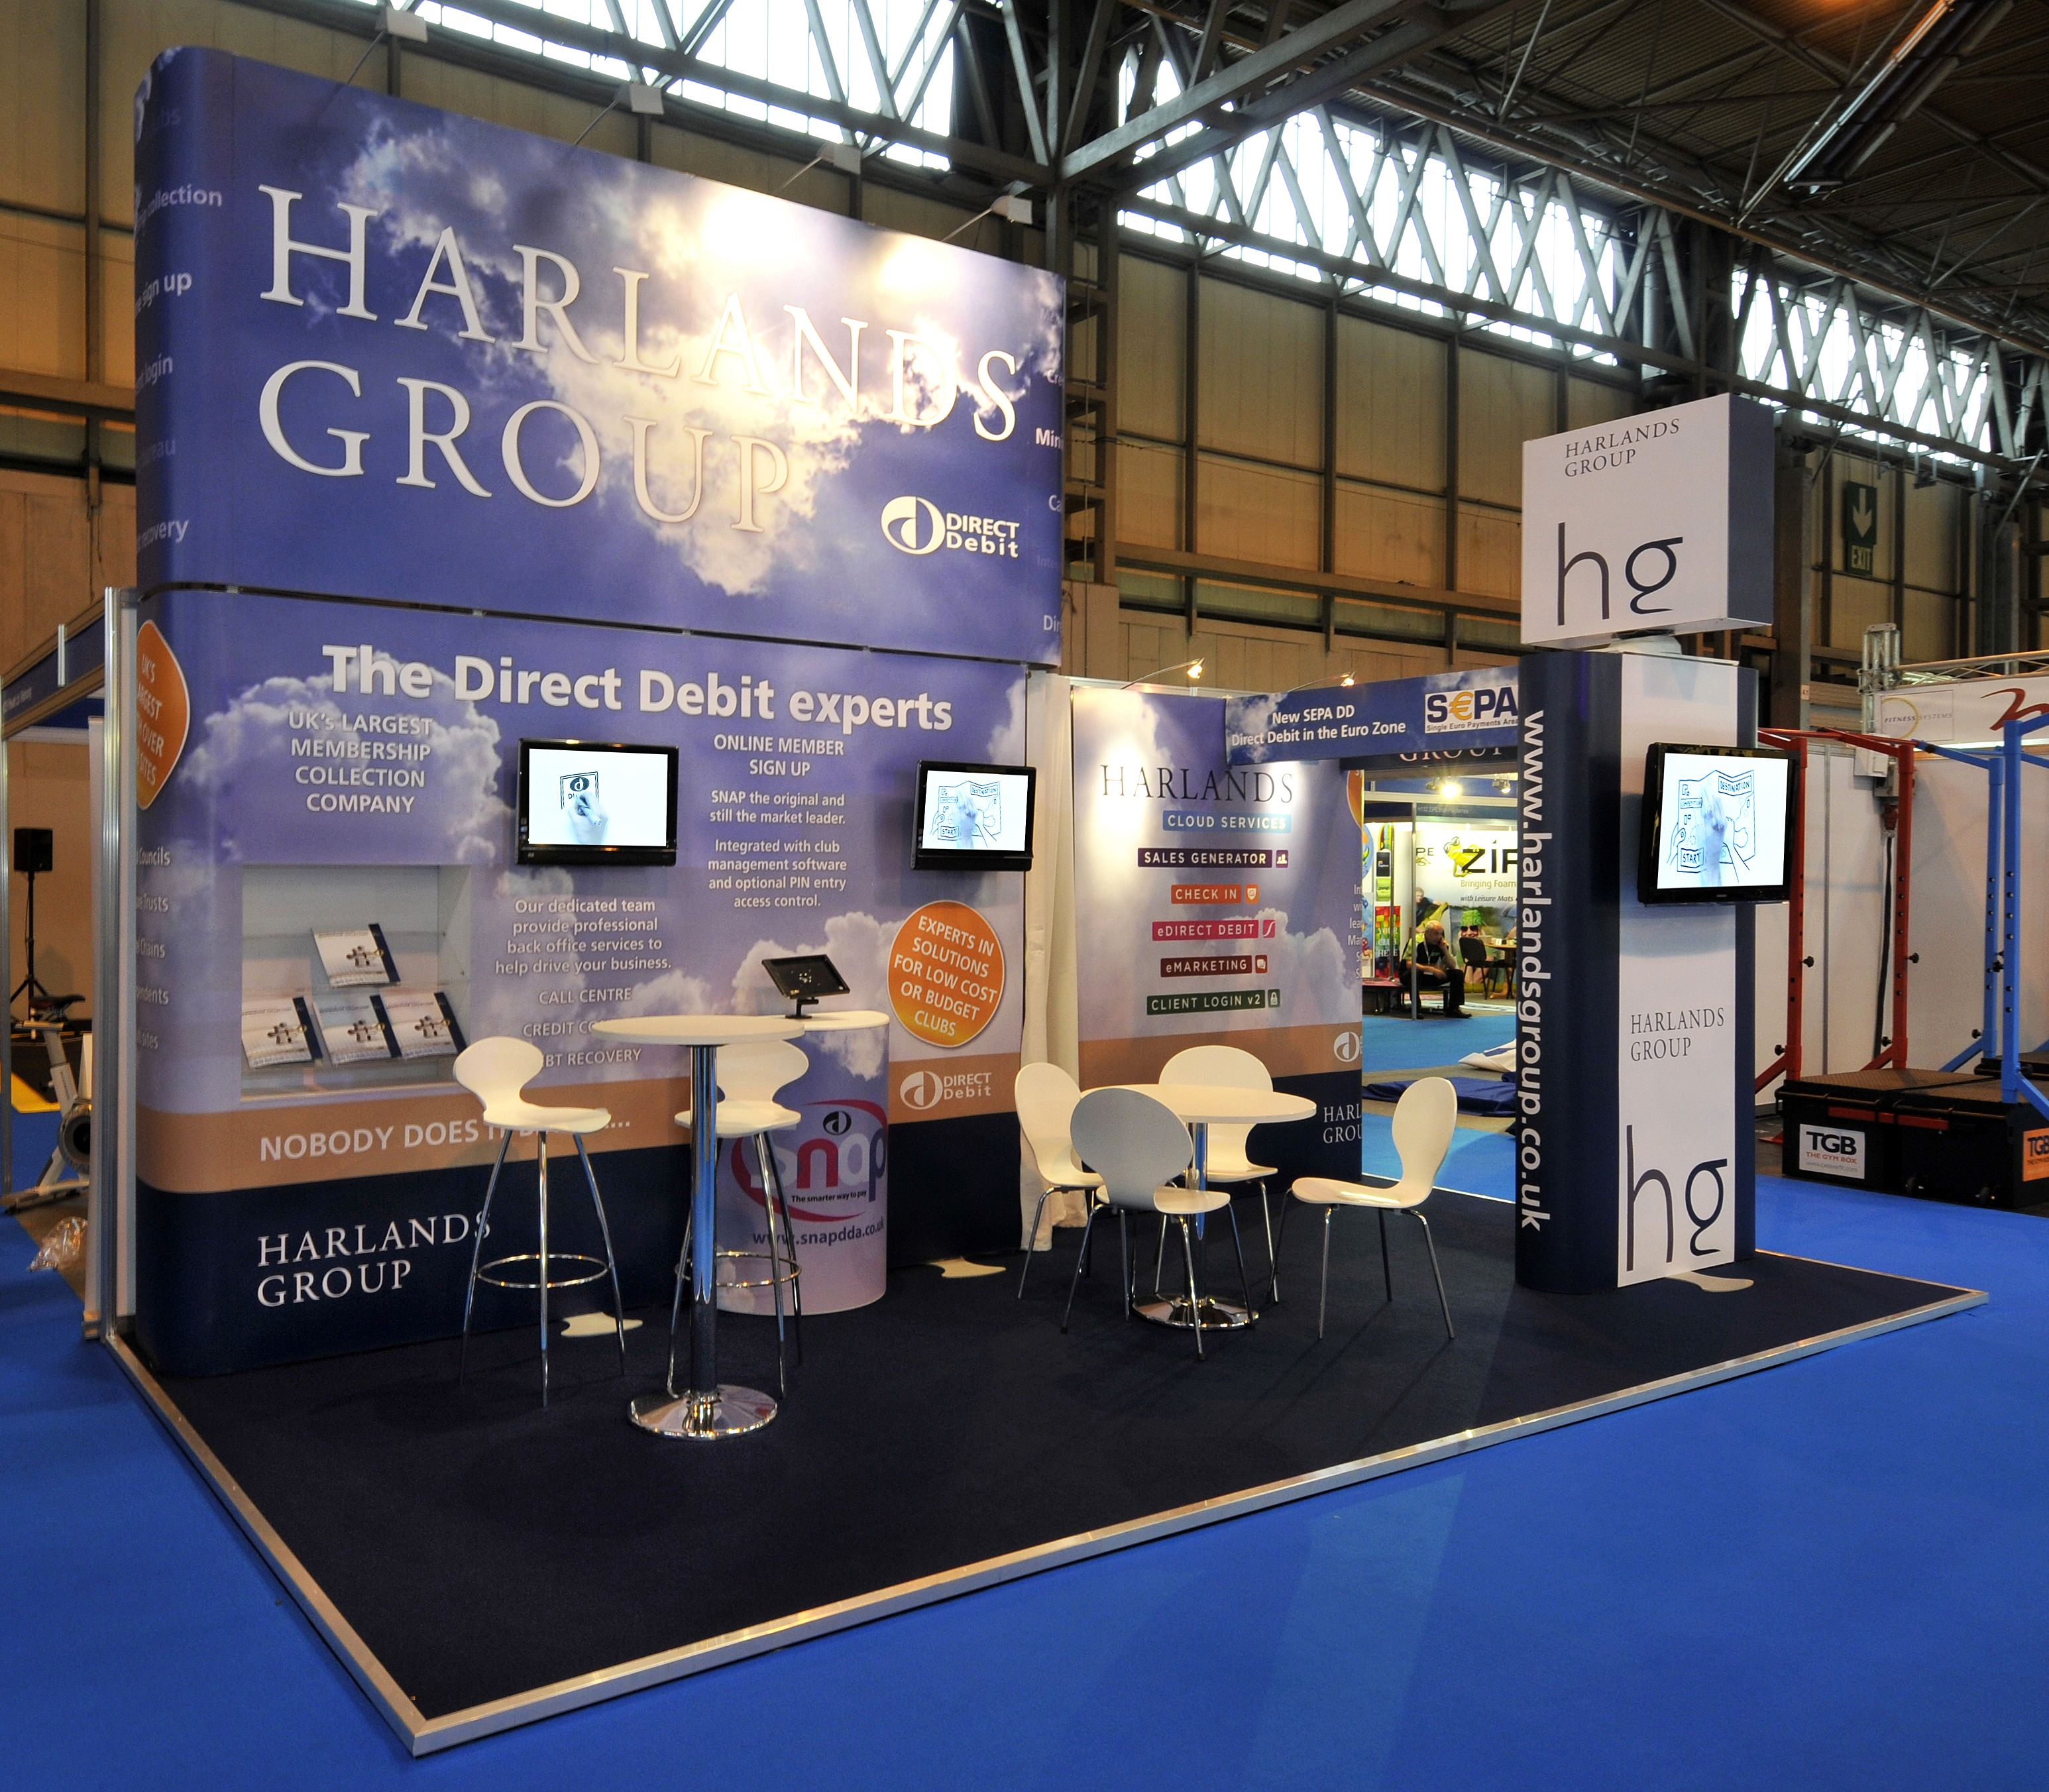 Exhibition Stand Measurements : Exhibition stand for harlands group at leisure industry